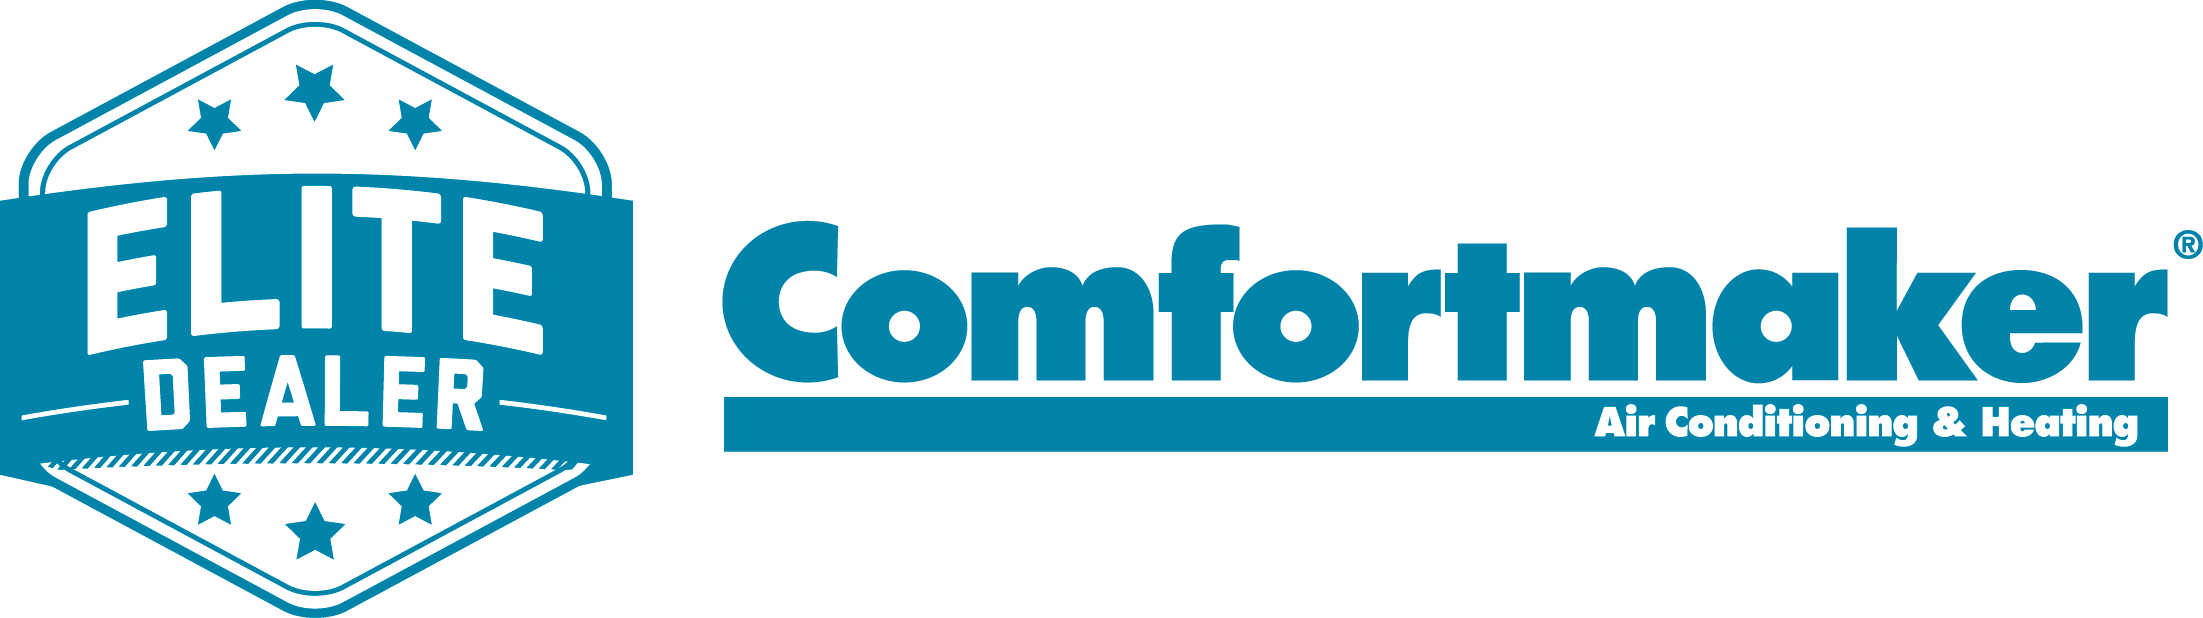 Air Conditioning and Heating Services